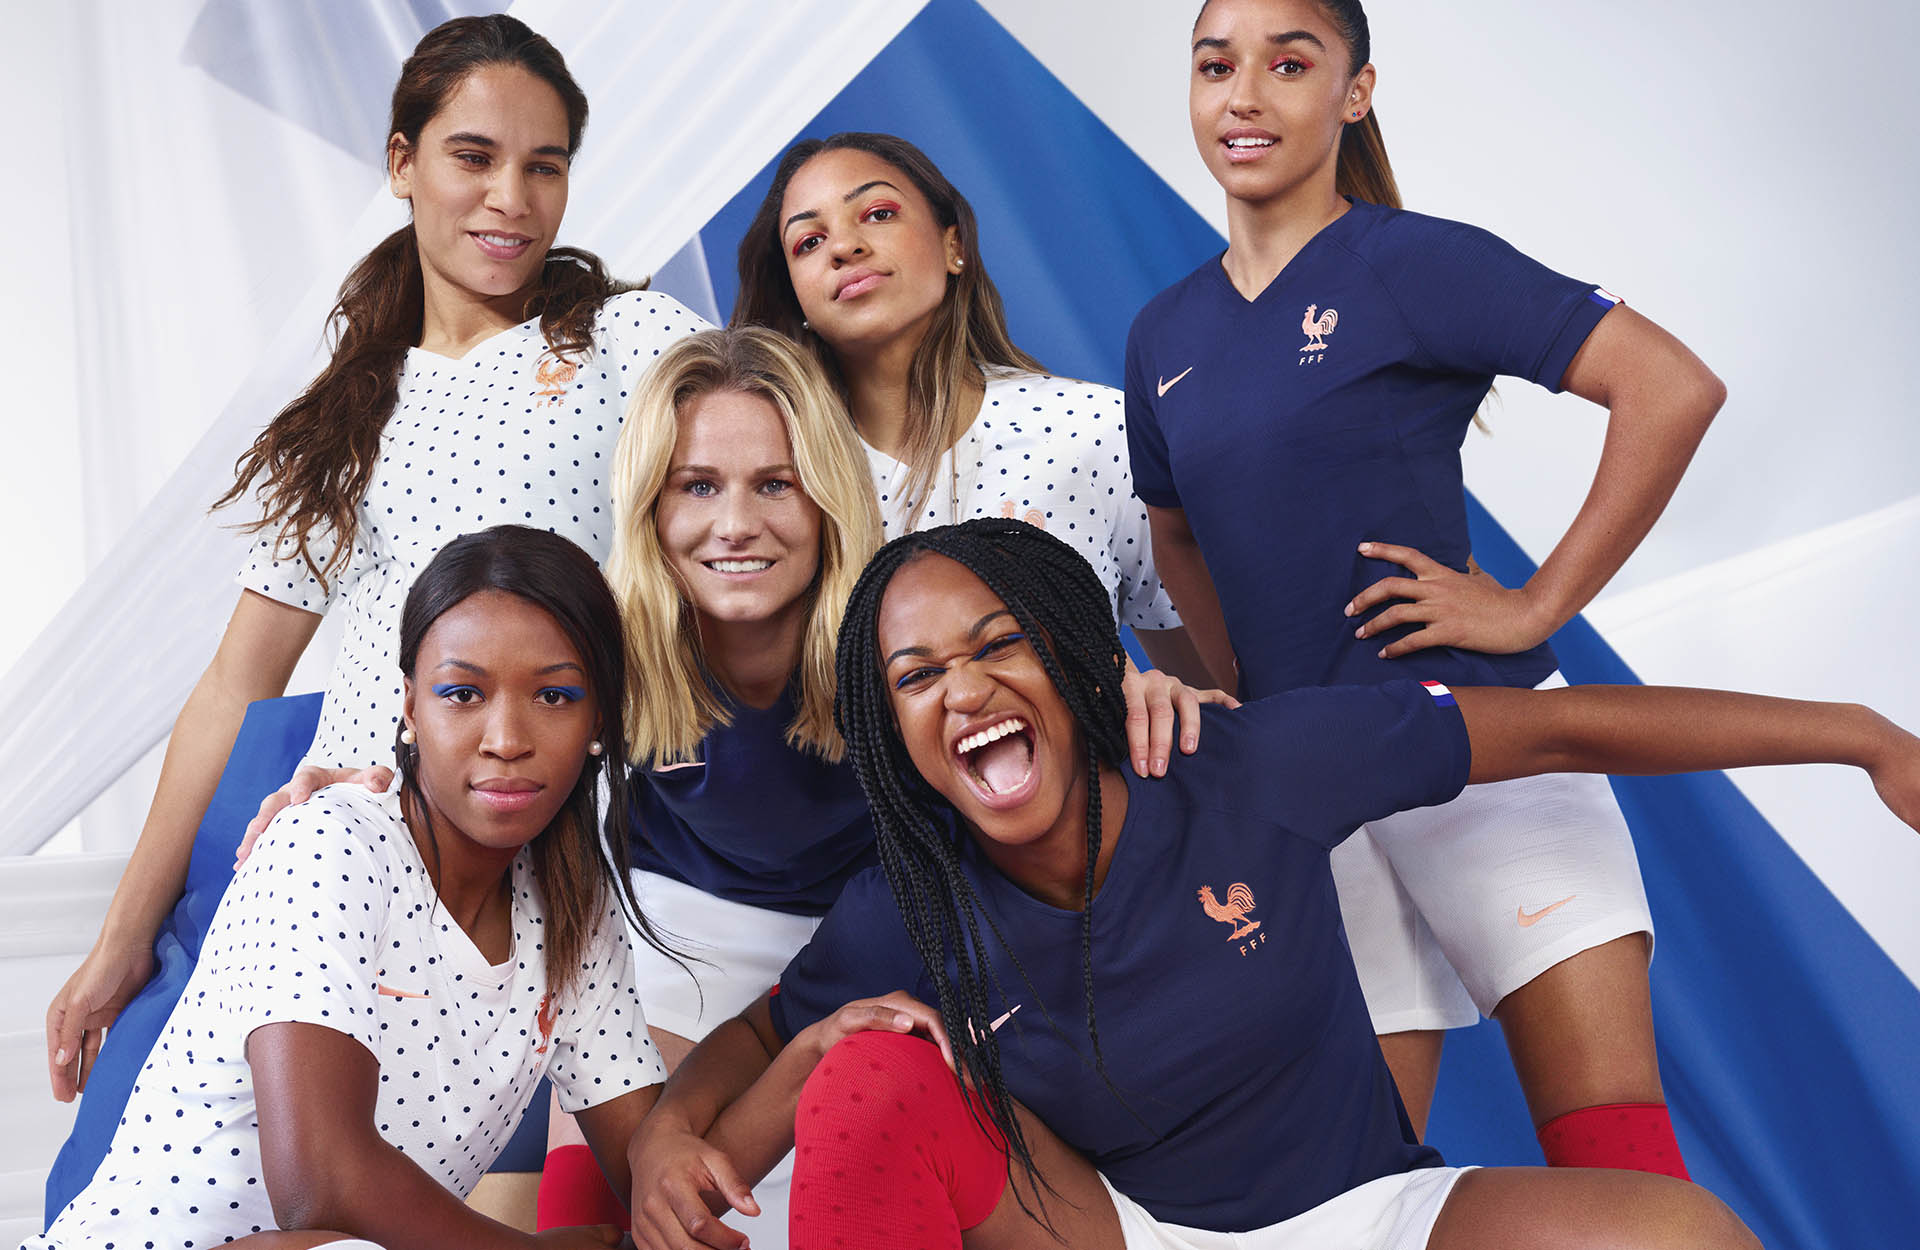 all nike wwc kits_0001_2019-france-national-team-kit_original.jpg